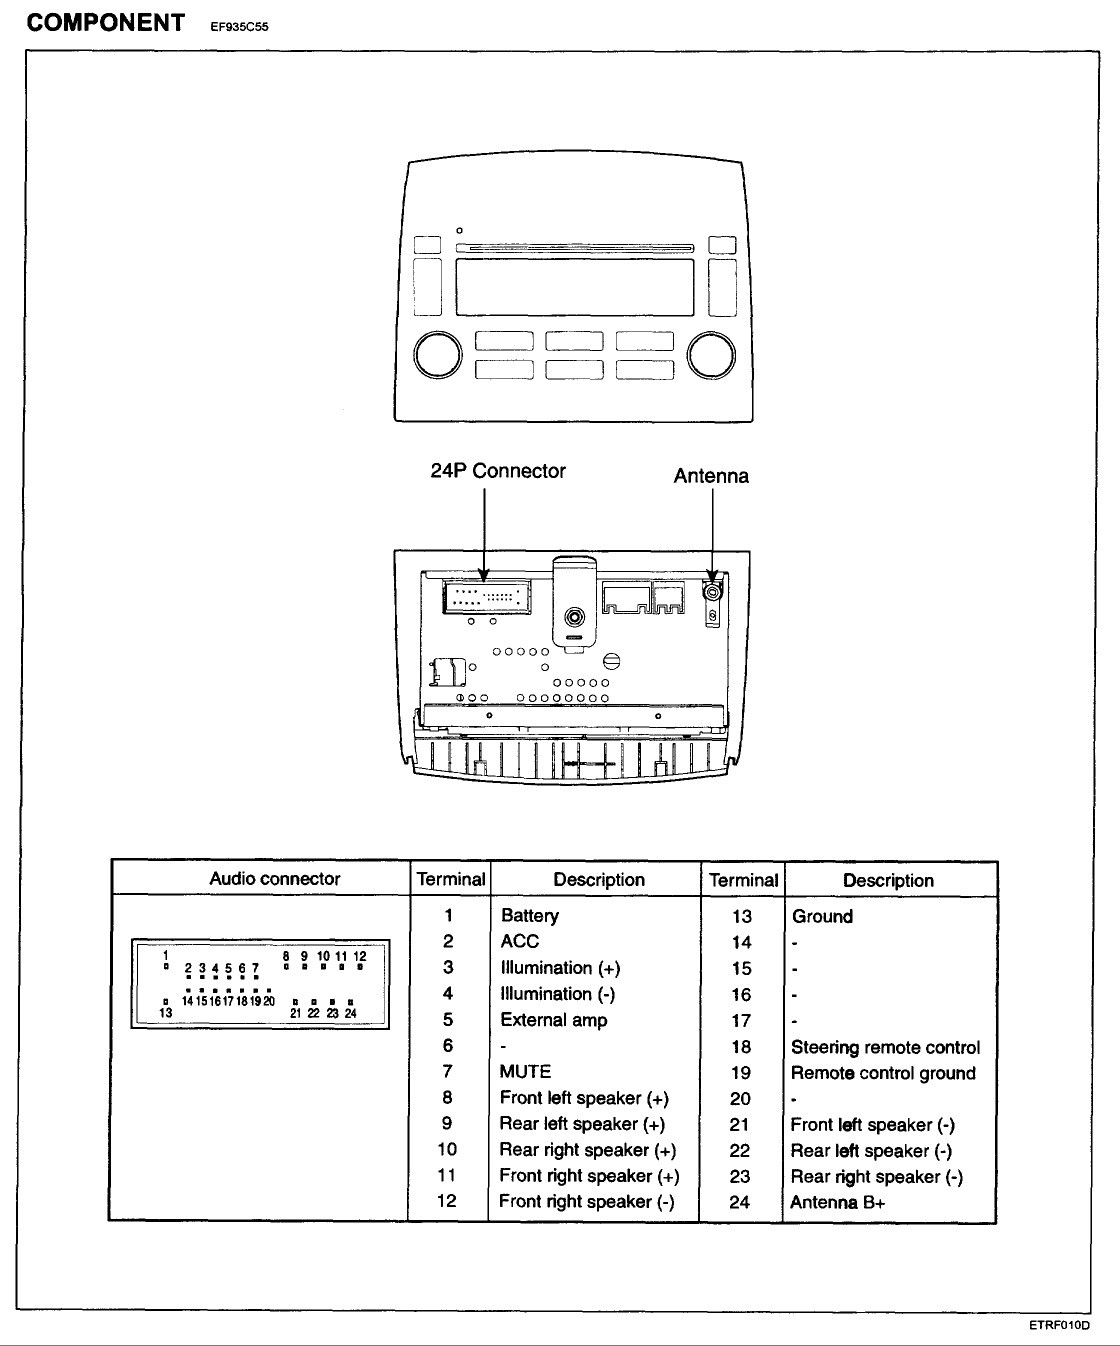 Hyundai Santa Fe Stereo Wiring Diagram - Wiring Diagram point mute-answer -  mute-answer.lauragiustibijoux.it | 2005 Hyundai Santa Fe Wire Diagram |  | Laura Giusti Bijoux